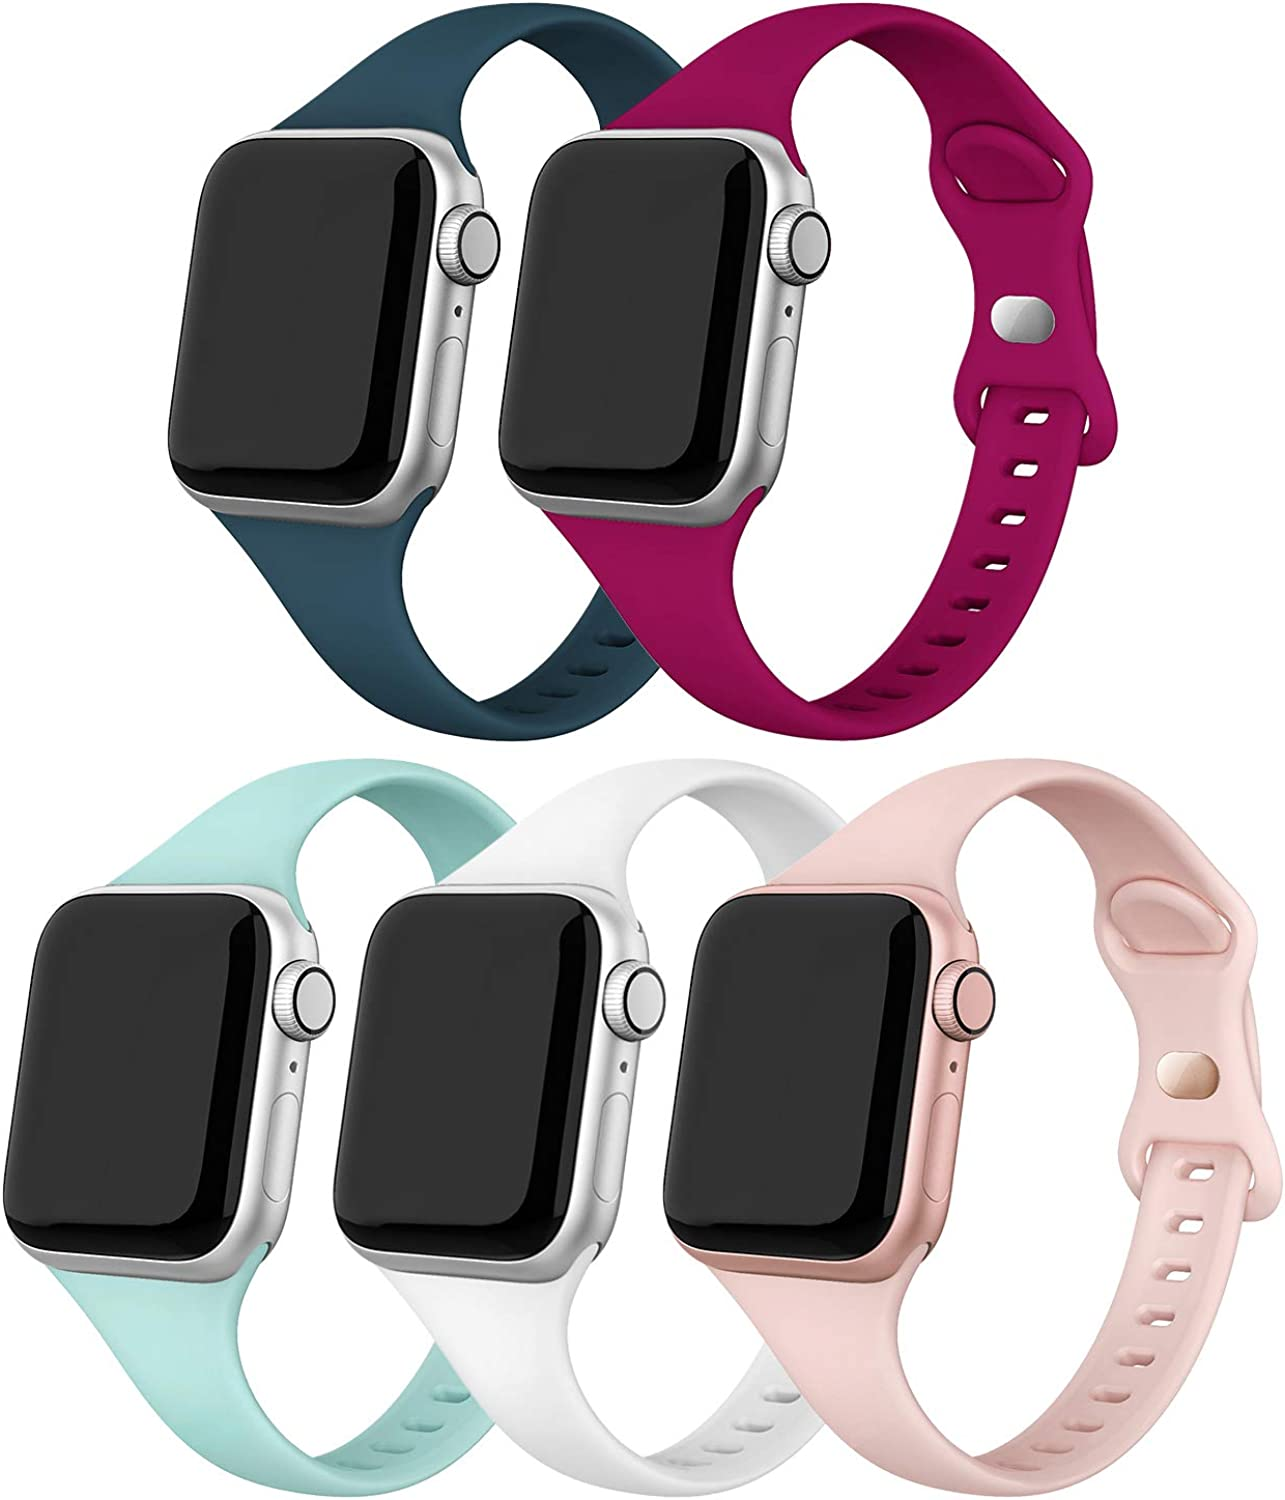 EDIMENS Sport Band Compatible with Apple Watch 38mm 40mm, 5 Packs Soft Silicone Slim Thin Small Narrow Replacement Wristband Compatible for iWatch Series 6 5 4 3 2 1 SE Sport Edition Women Men